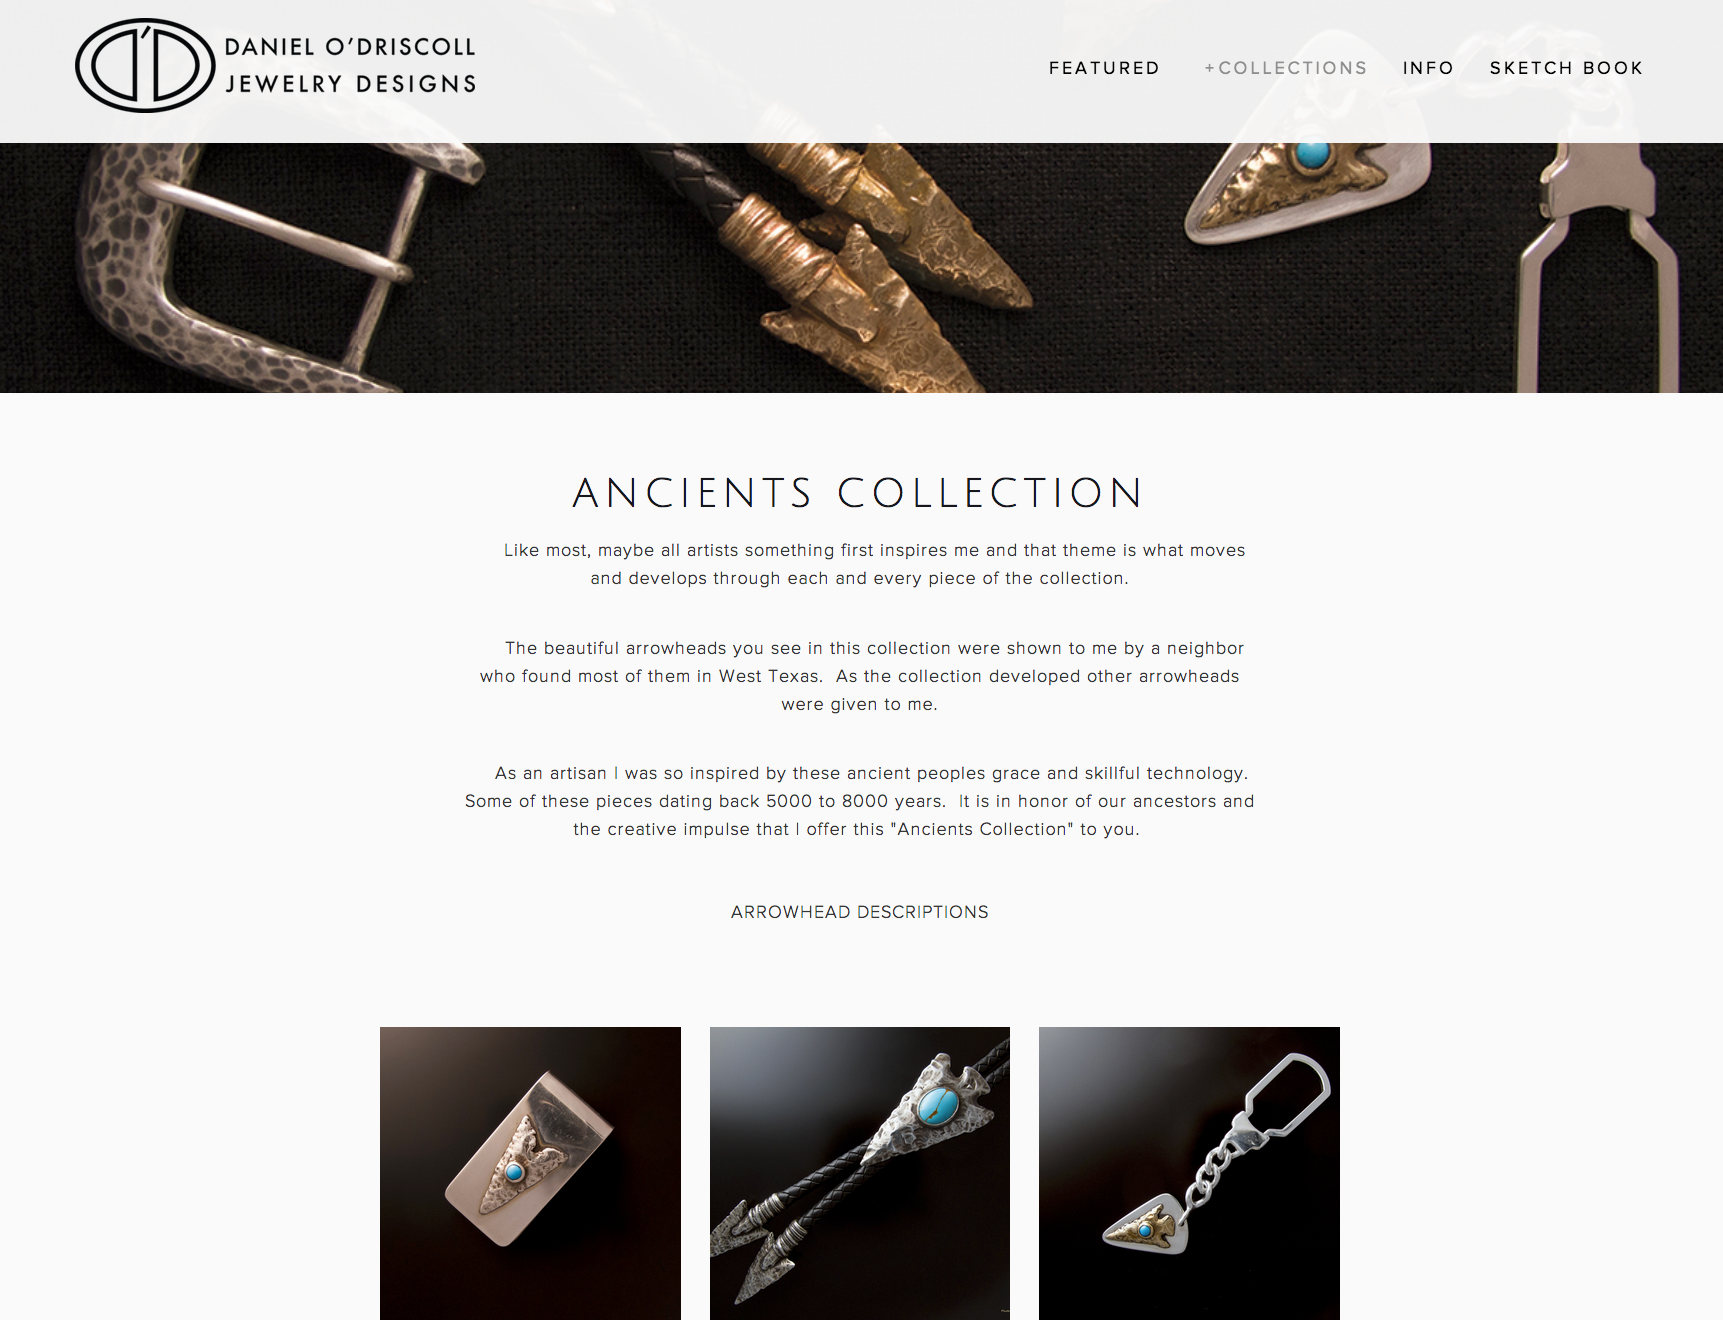 This site for Daniel O'Driscoll was a complete redesign from an older site in order to showcase his new and growing jewelry collections. While incorporating eCommerce and social media with the ability to quickly manage and update content as new pieces are created, the site is a catalogue of designs to coordinate featured work with ongoing print advertising.